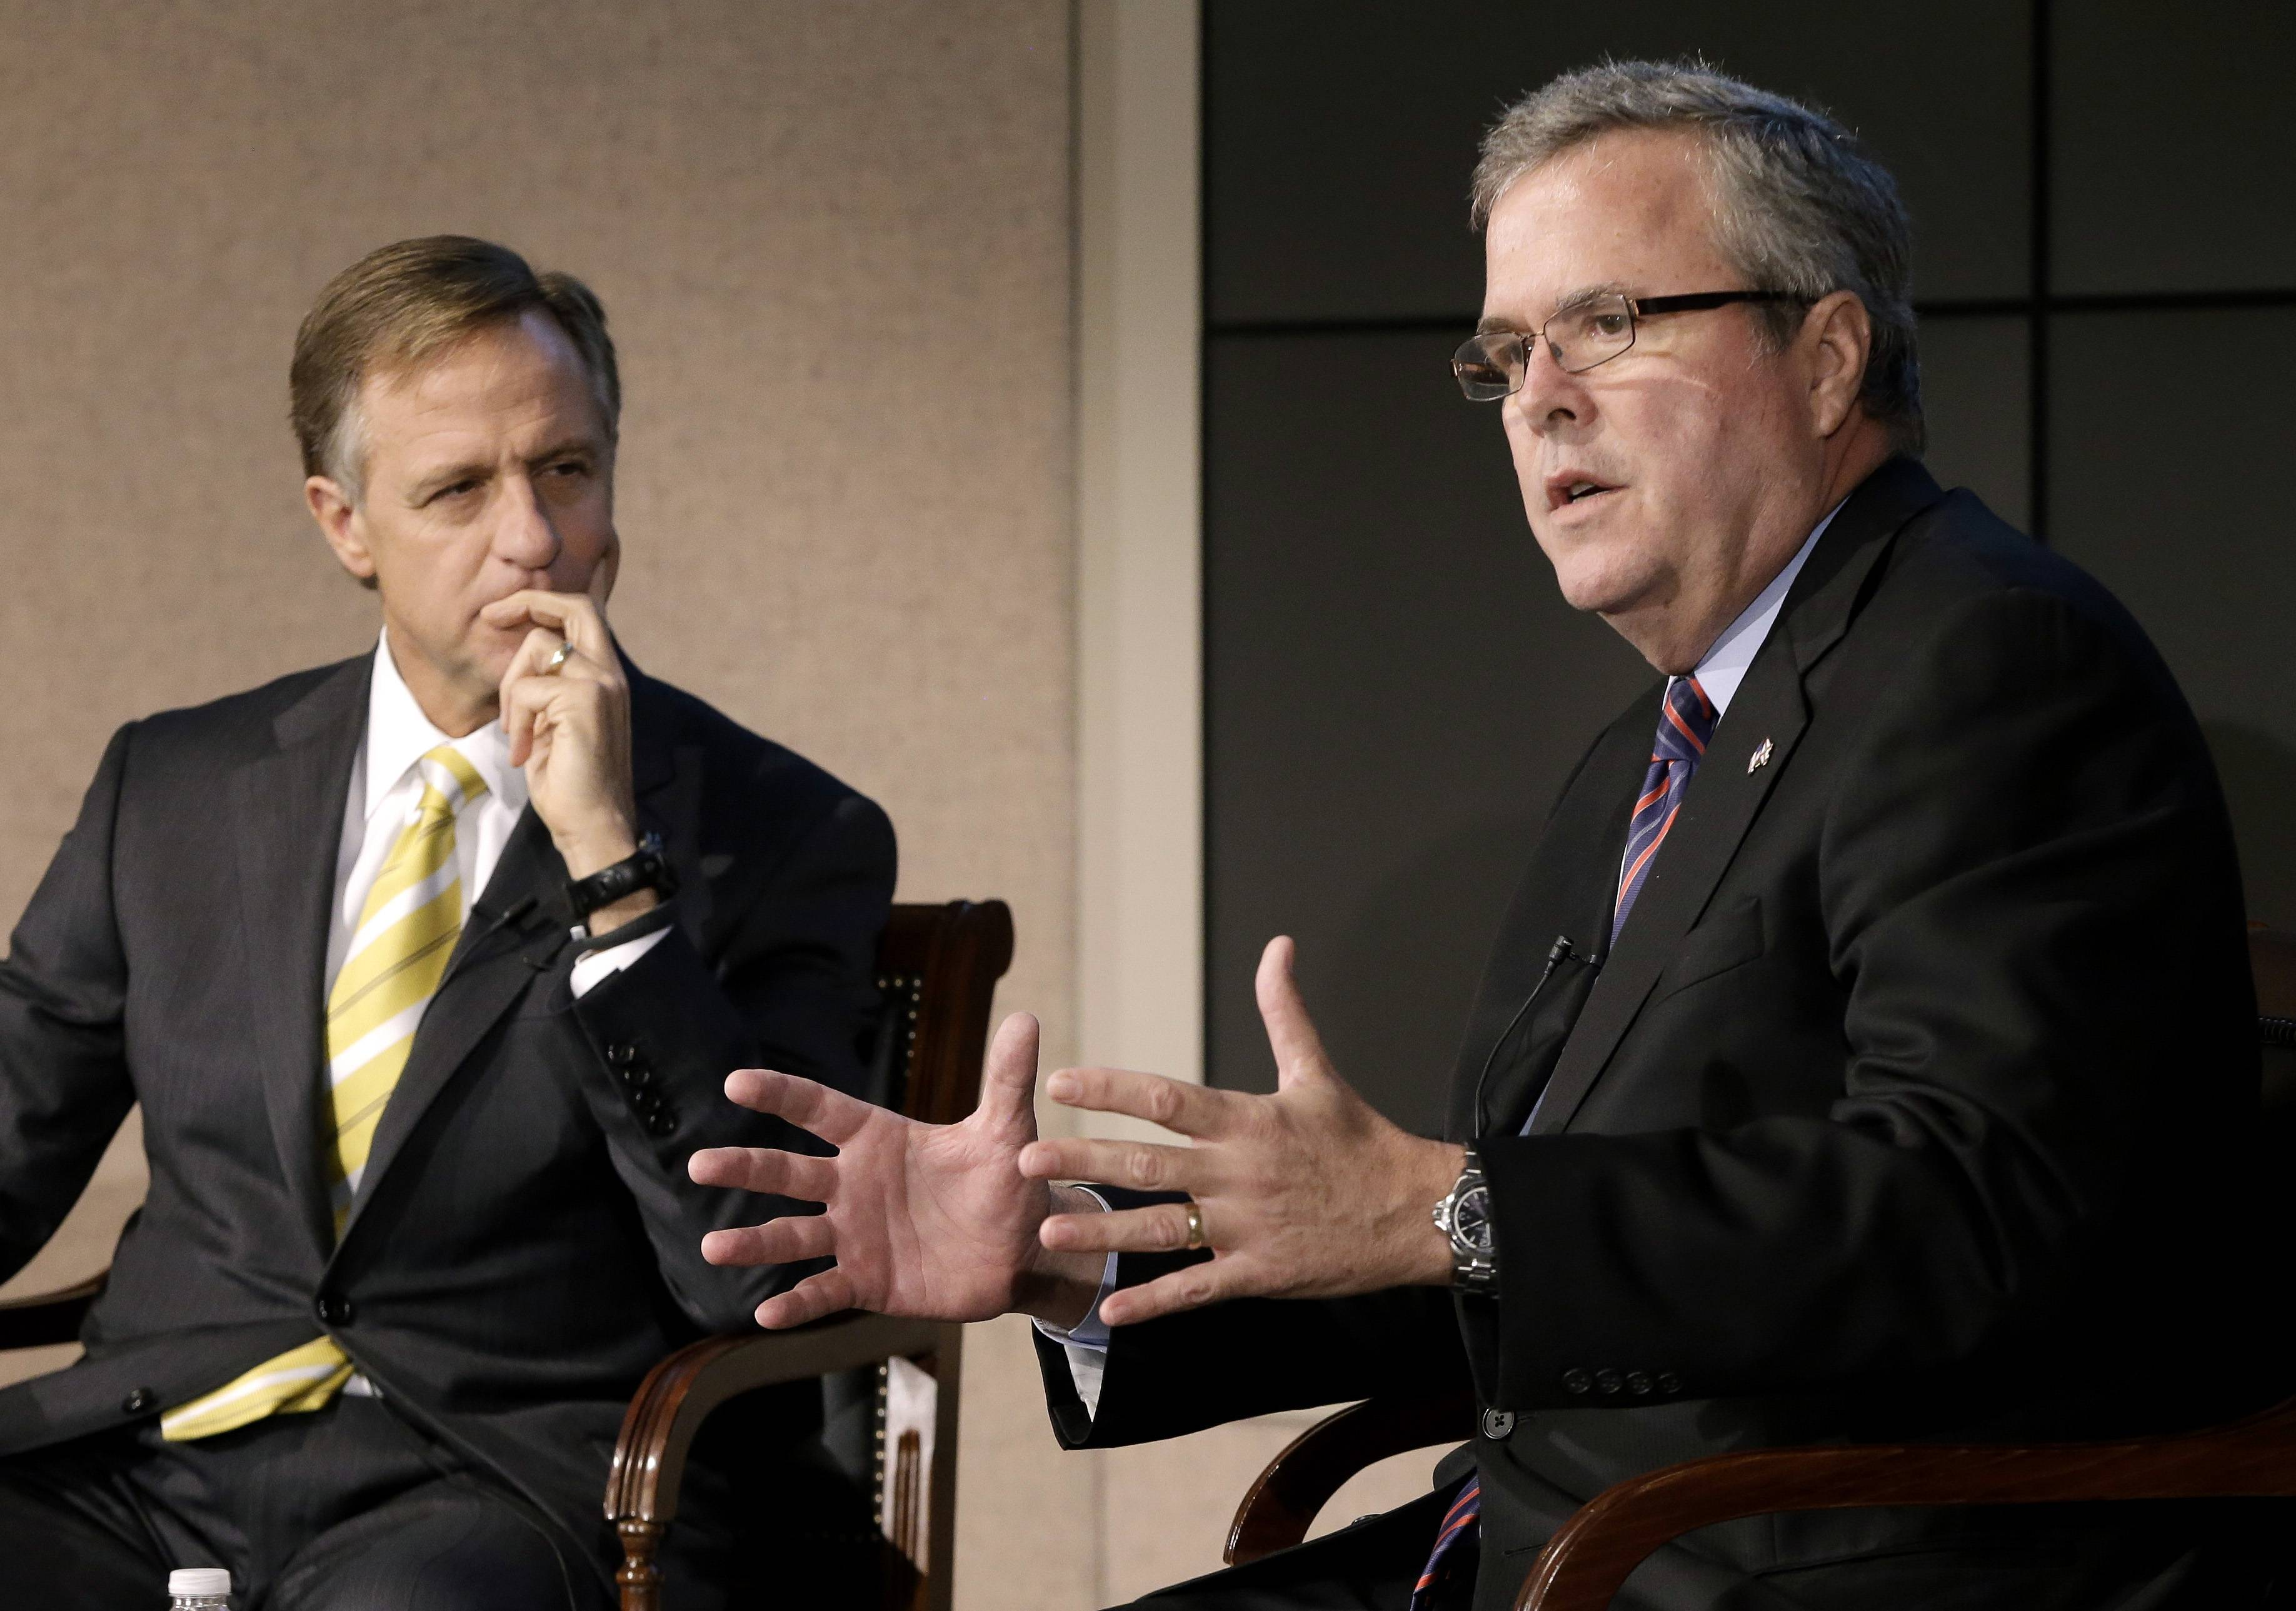 Former Florida Gov. Jeb Bush, right, and Tennessee Gov. Bill Haslam talk about education reform during a forum in Nashville, Tenn. More than five years after governors from both major parties began a mostly quiet effort to set new standards in American schools, the so-called Common Core initiative has morphed into a political tempest that fuels division among Republicans. Bush hails Common Core as a way to improve student performance and, over the long term, competitiveness of American workers.